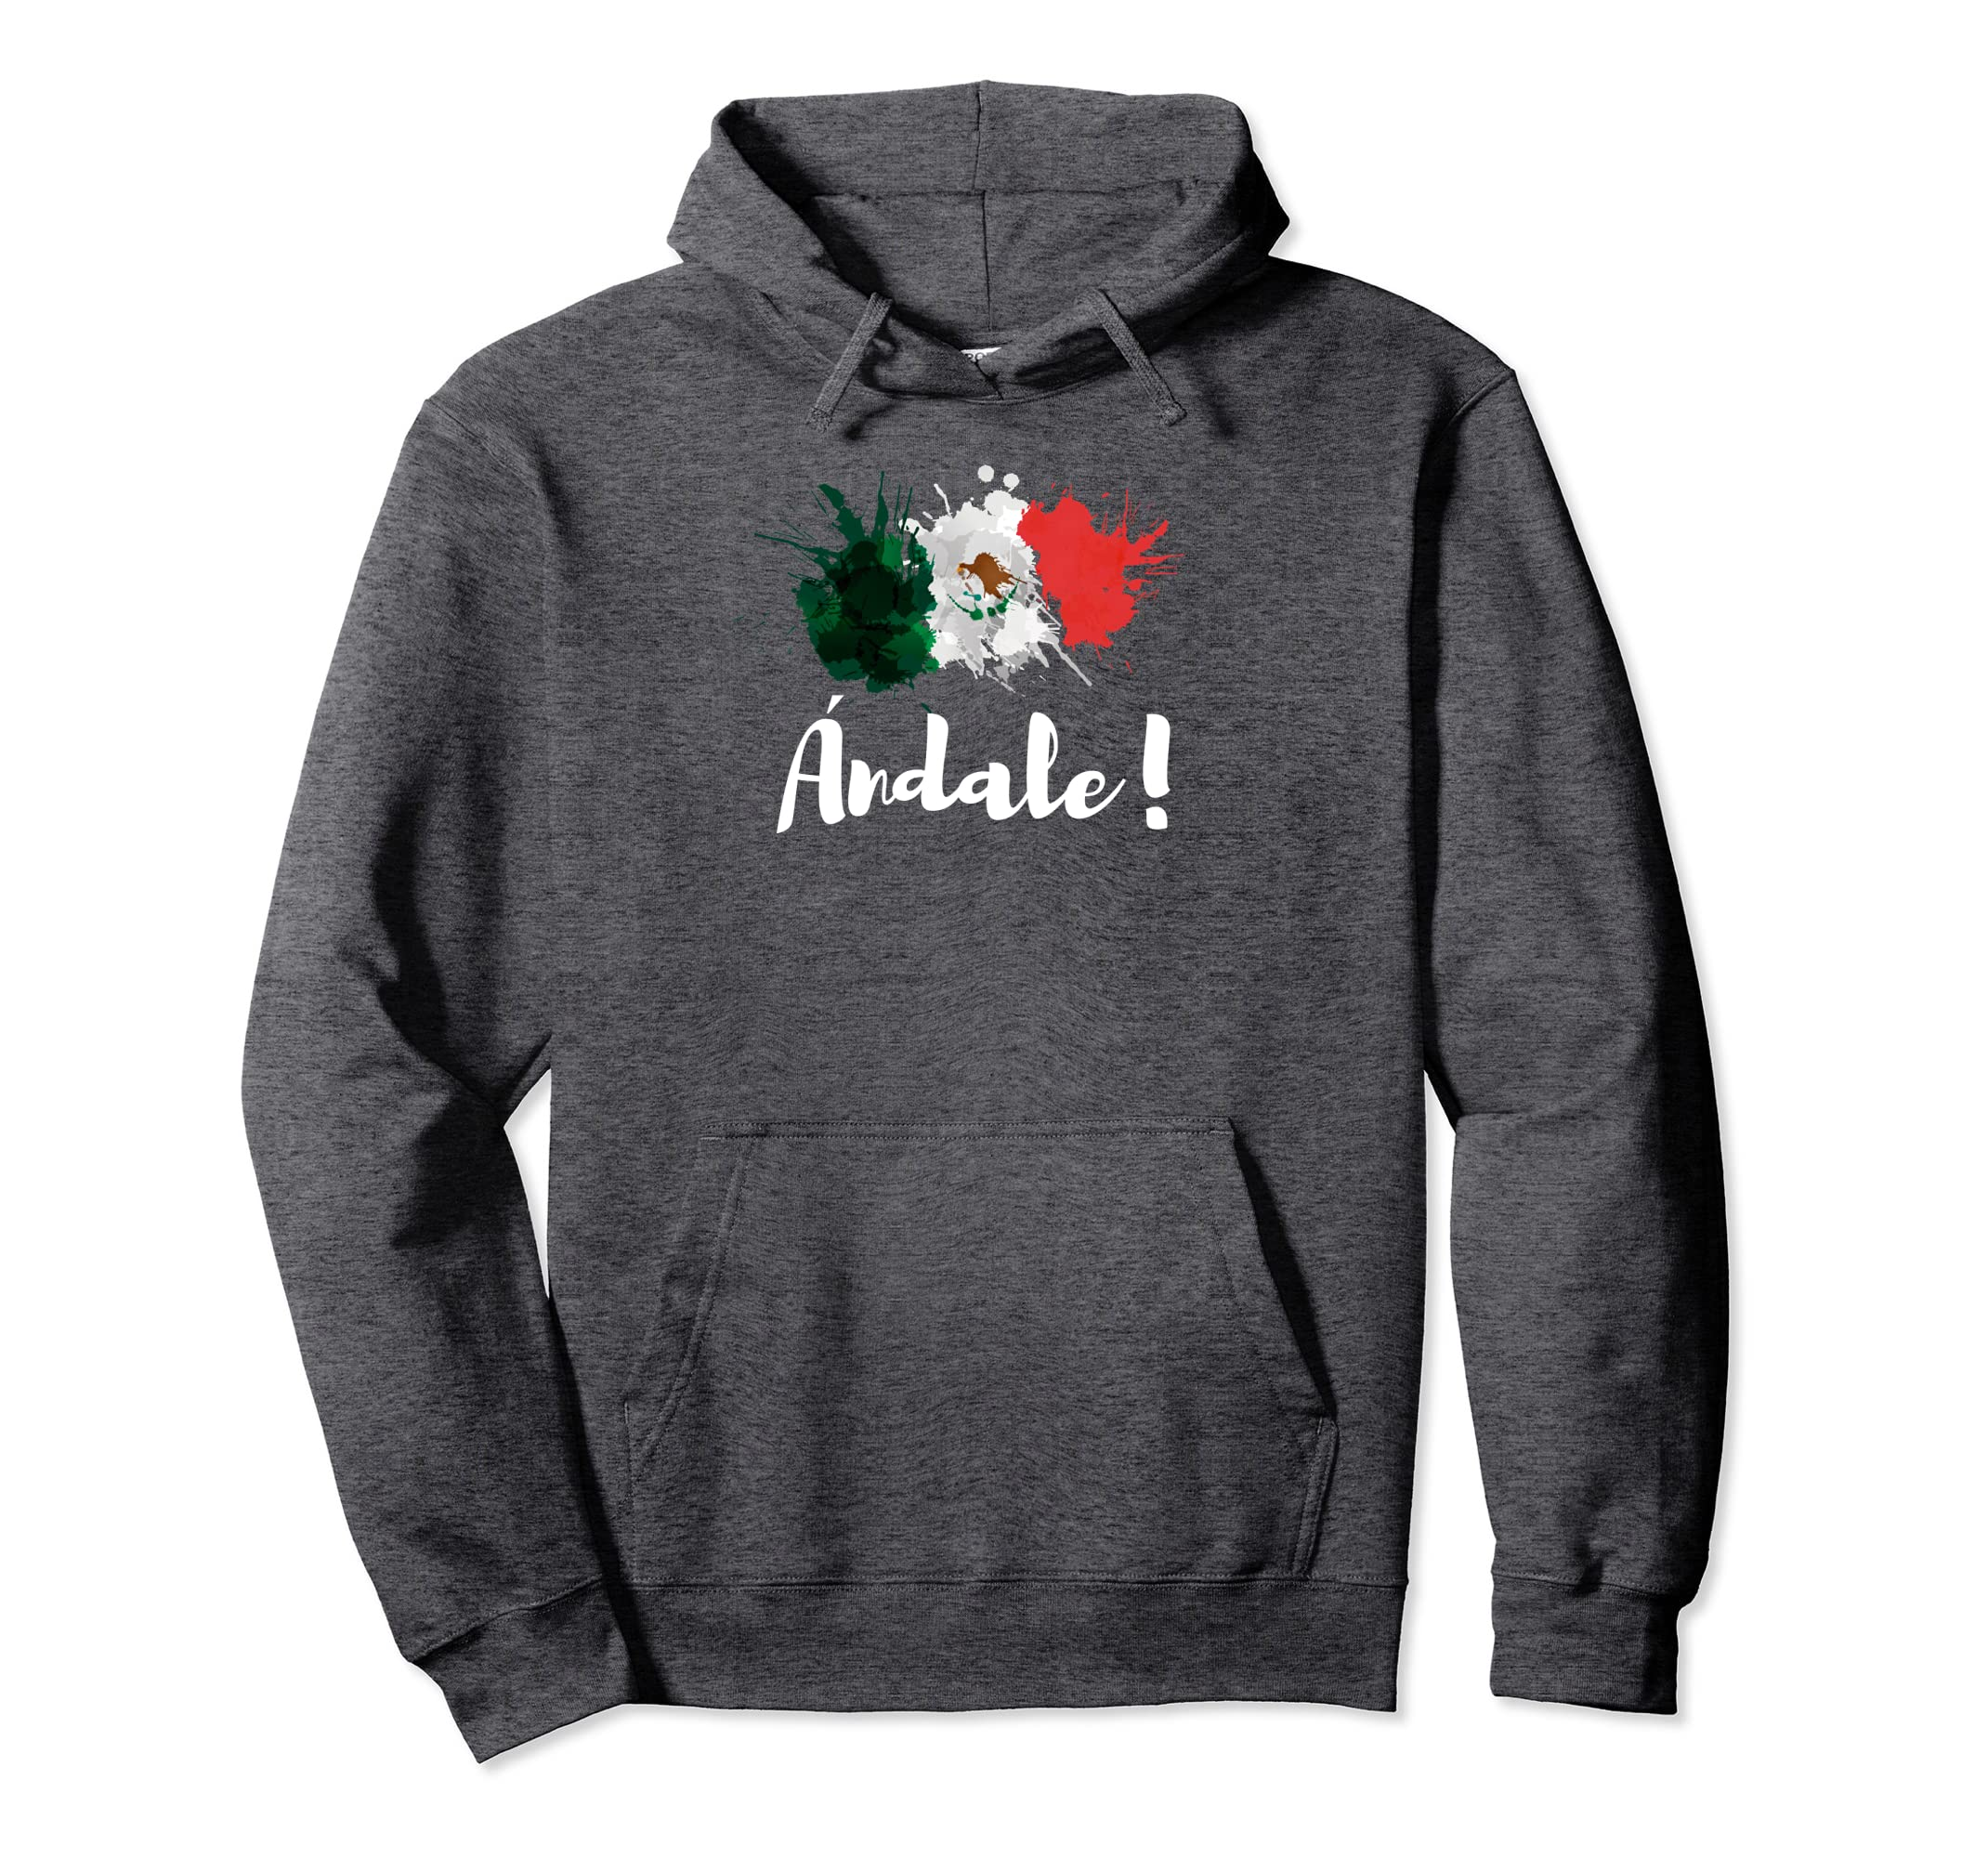 Amazon.com: Mexican Funny Quotes Hoodie / Abrigo con Frases Mexicanas: Clothing